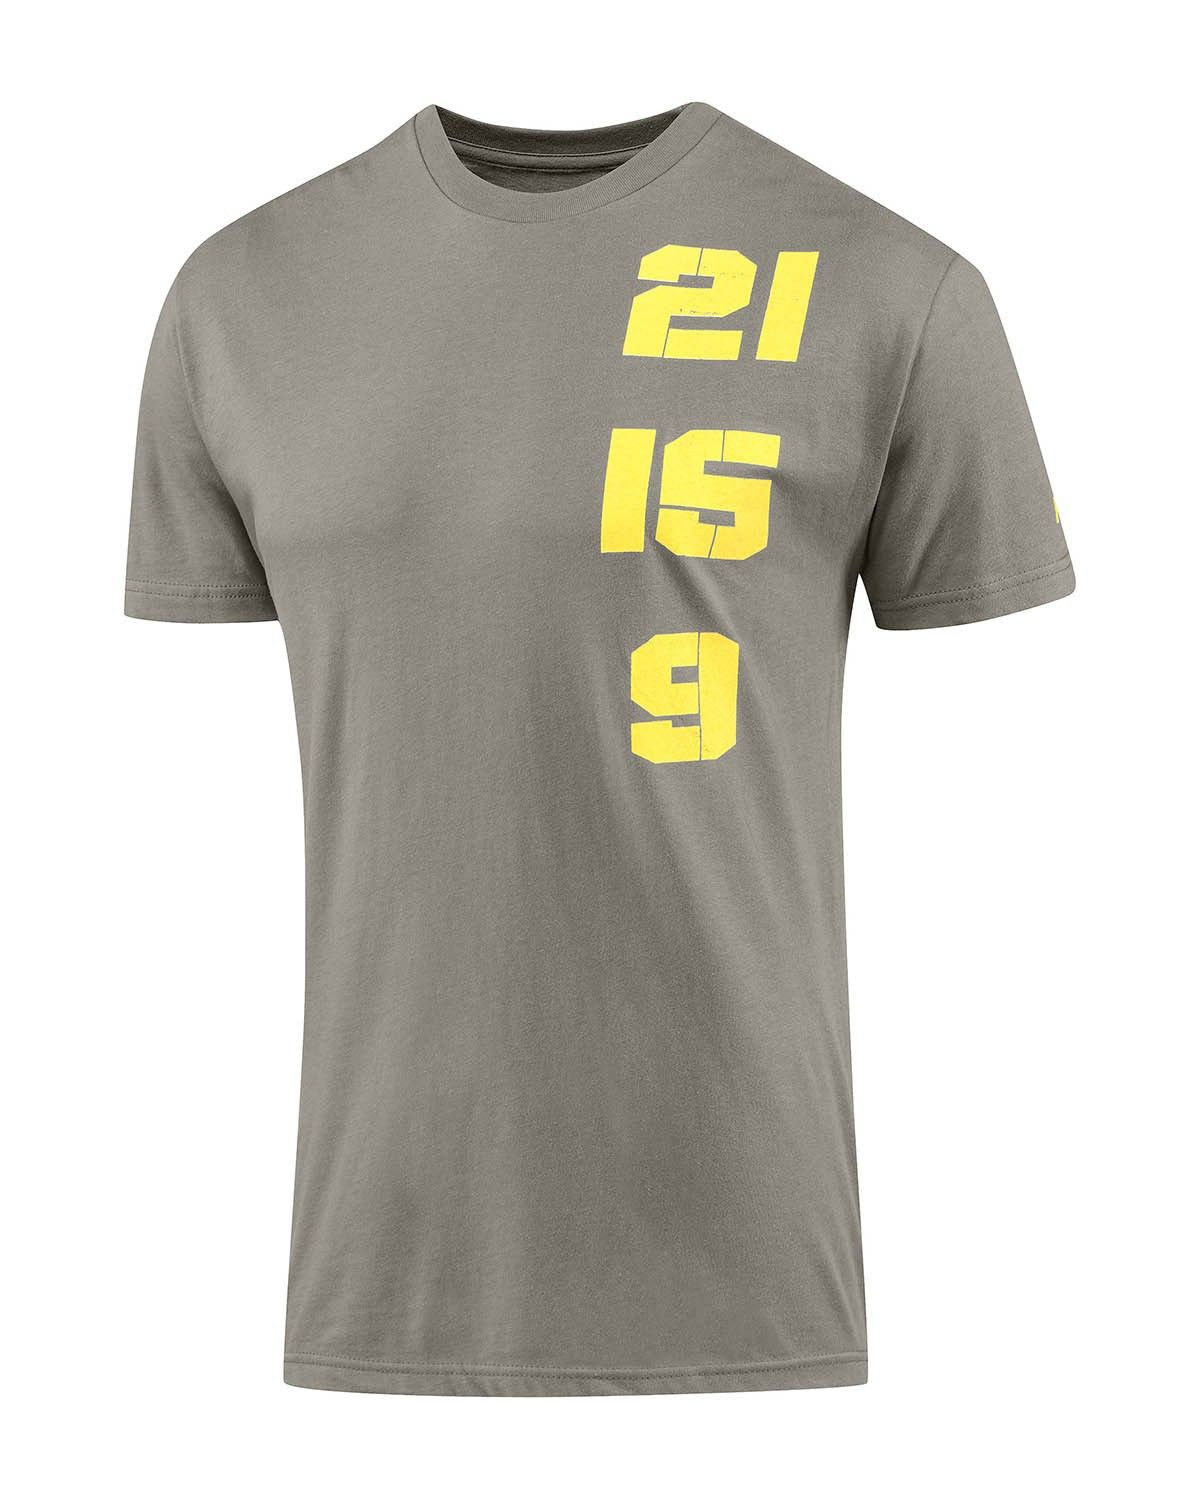 6689c3111ef50d CrossFit HQ Store- 21-15-9 Tee - Graphic Tees - Men Buy Authentic CrossFit T -Shirts